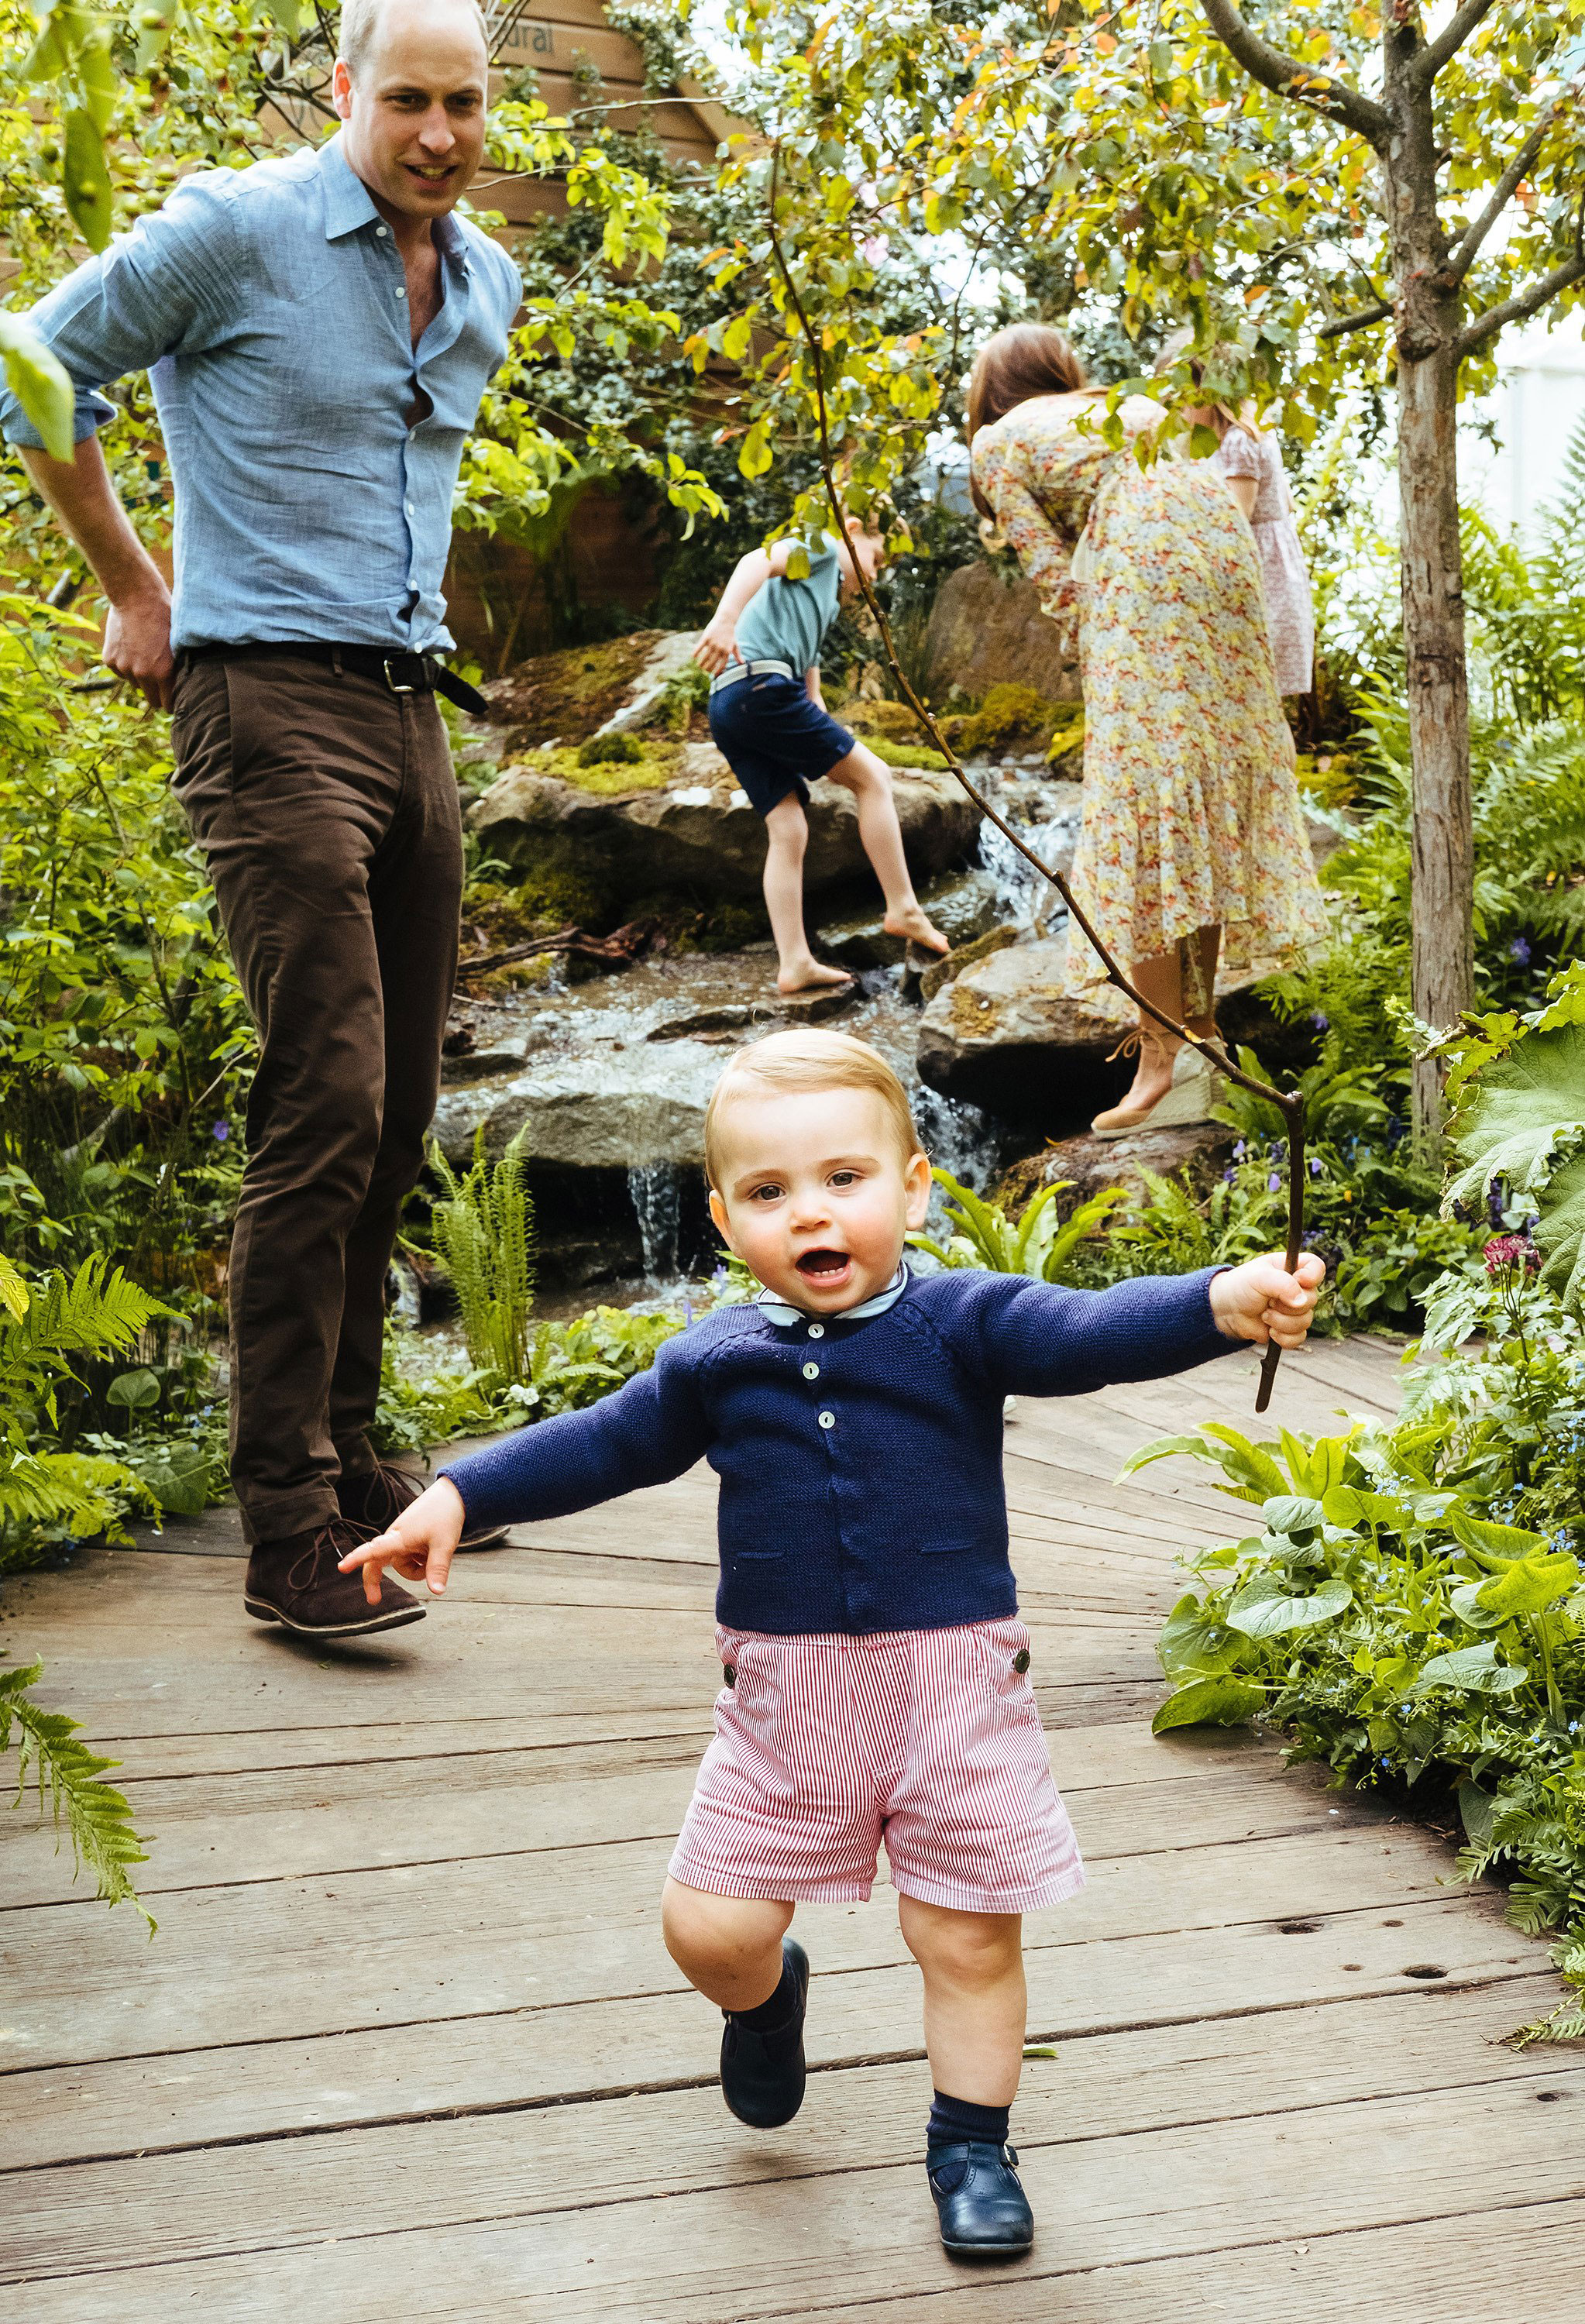 Prince William, Duchess Kate and Kids Play in the Garden She Designed at Chelsea Flower Show - Louis waved a stick as he charged down a wooden walkway.